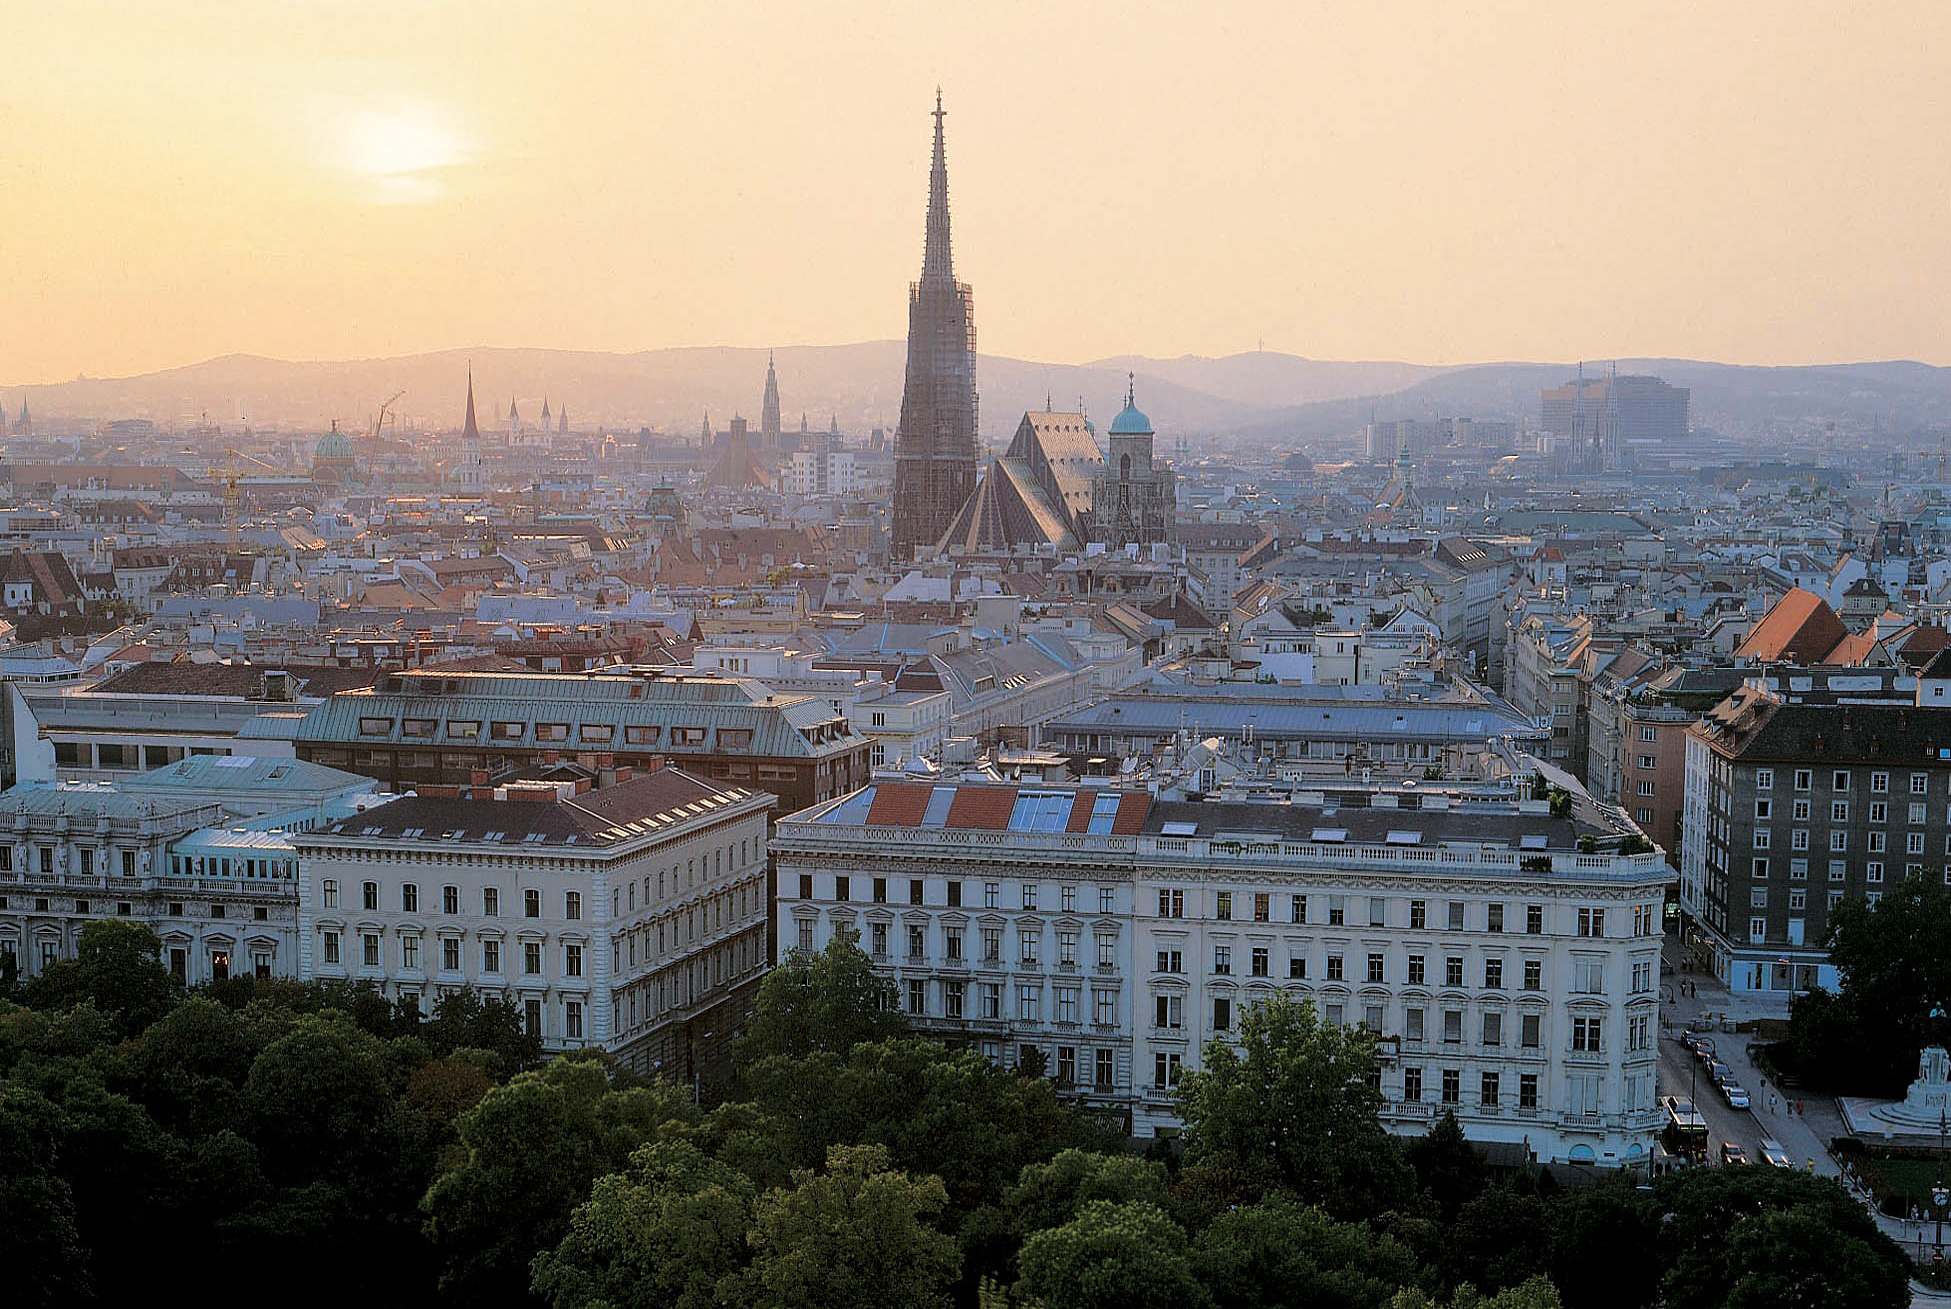 View of the City of Vienna